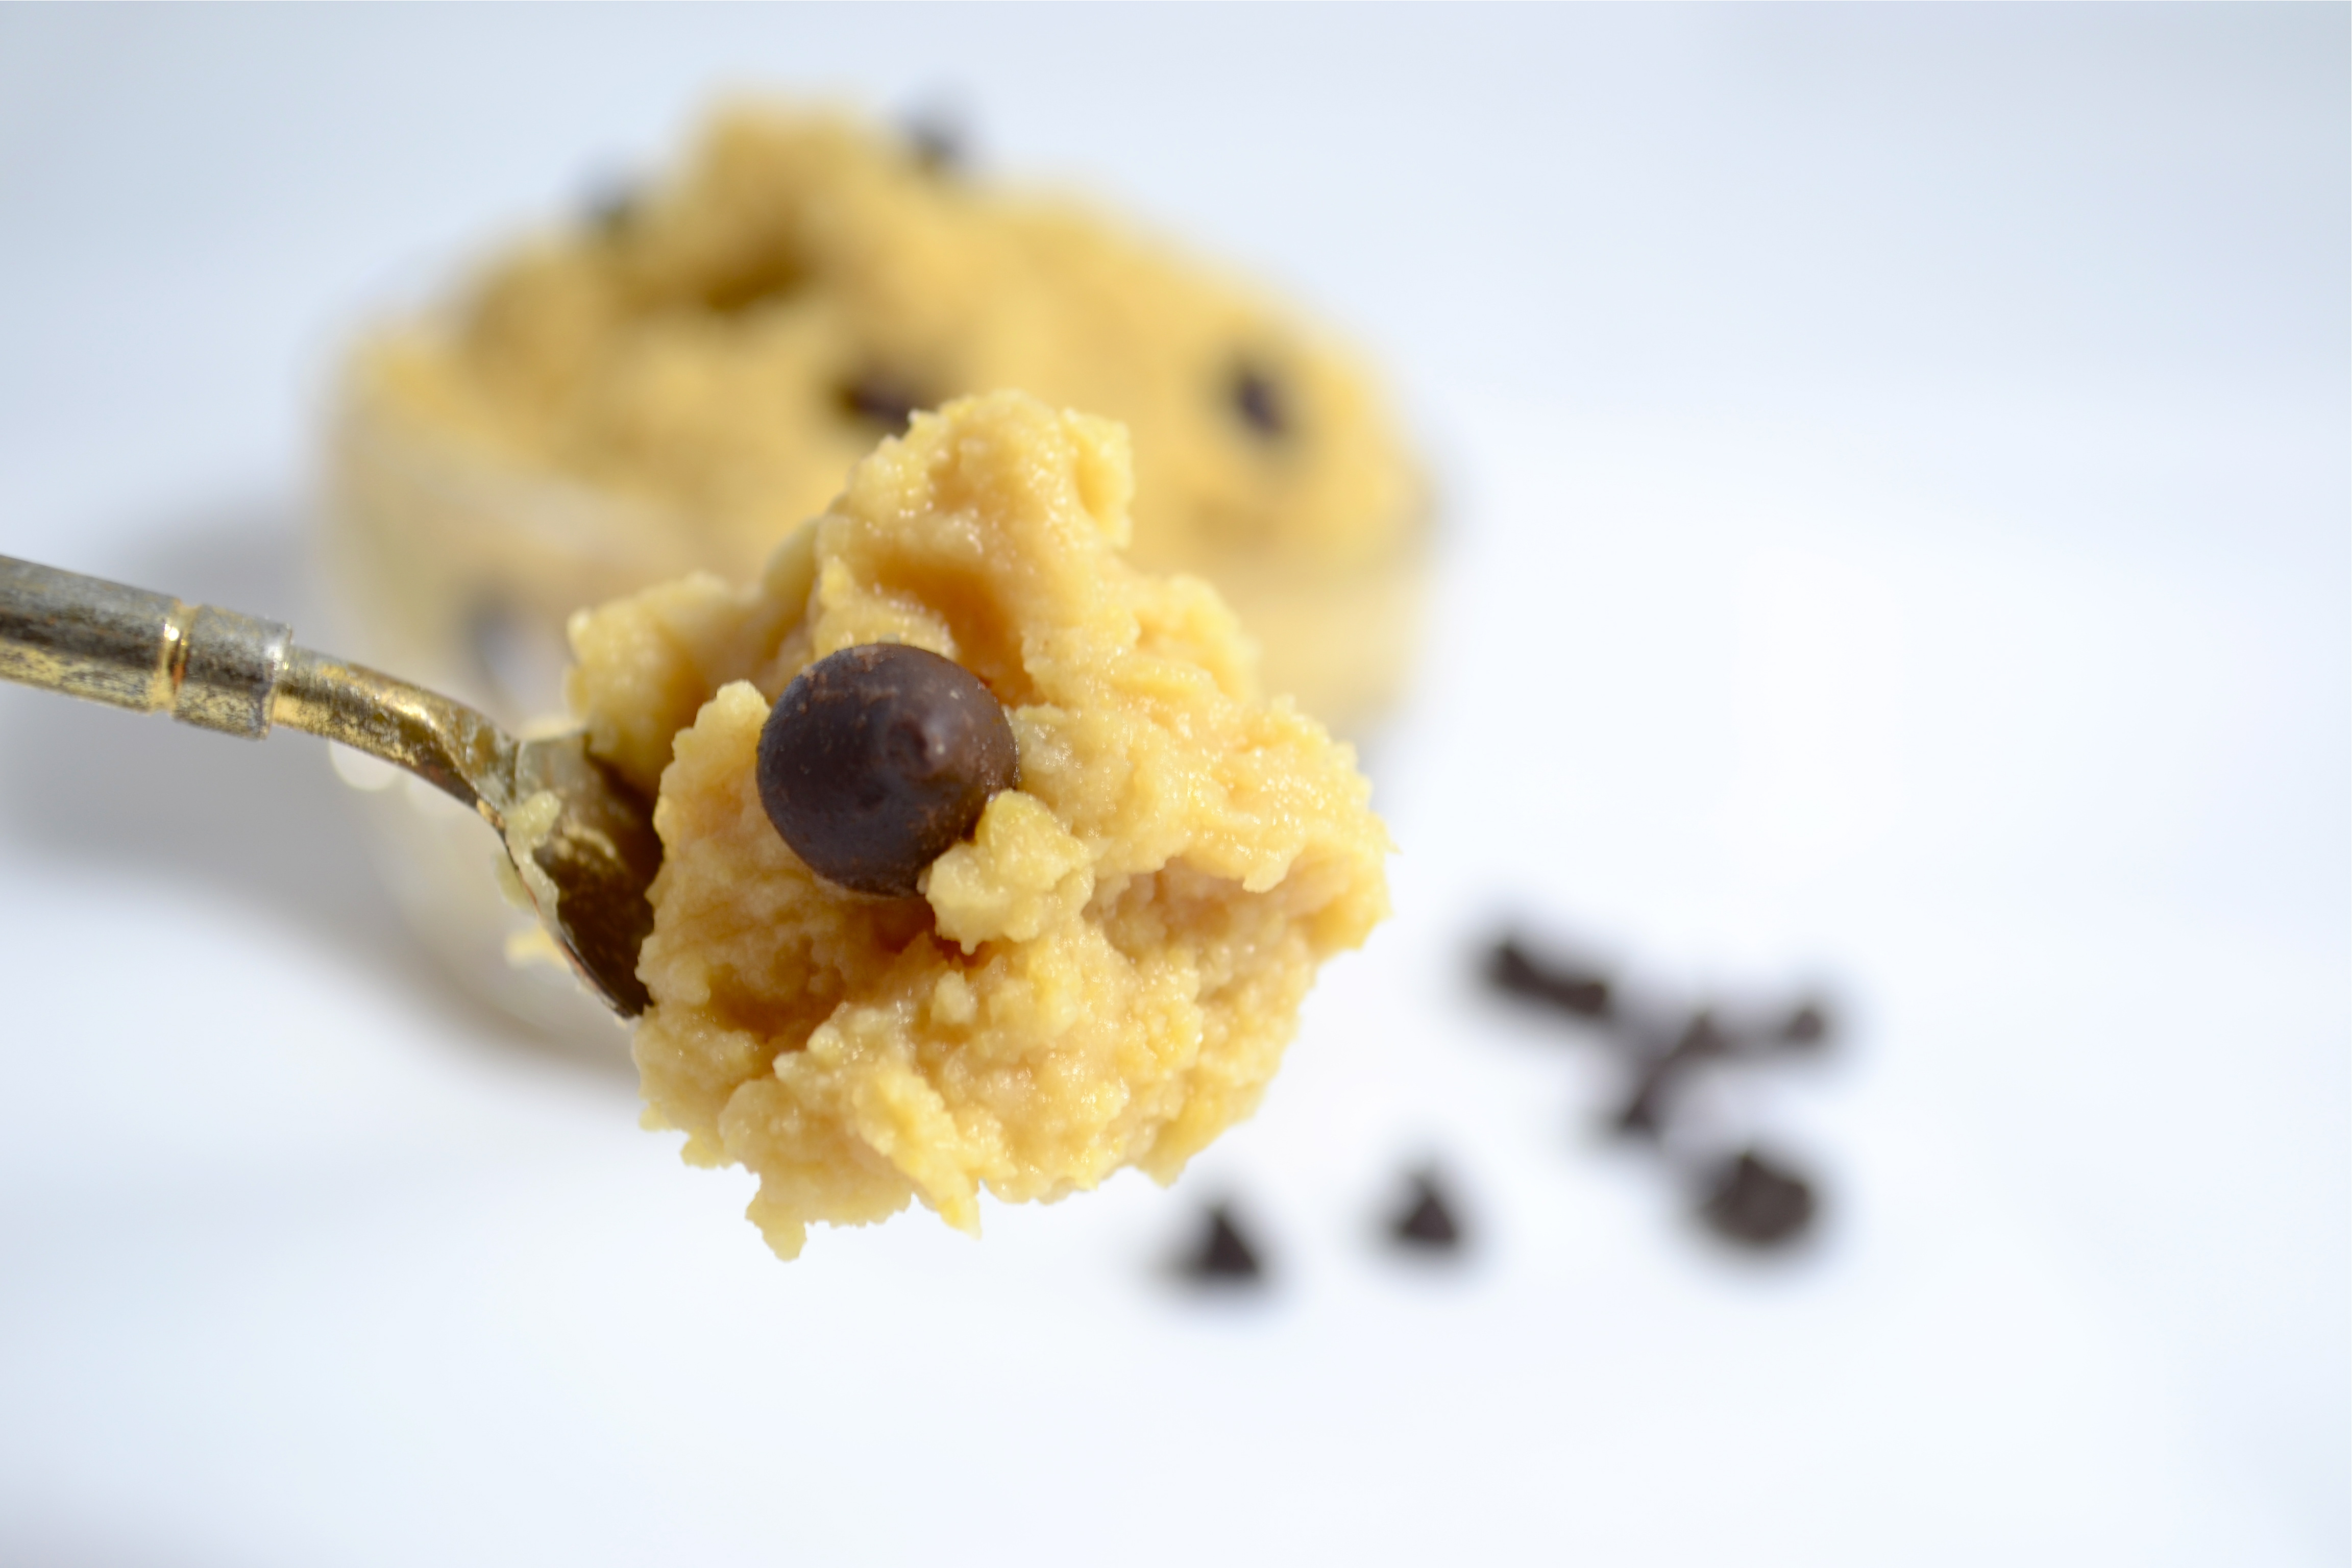 ... be better than being able to eat as much cookie dough as you wanted